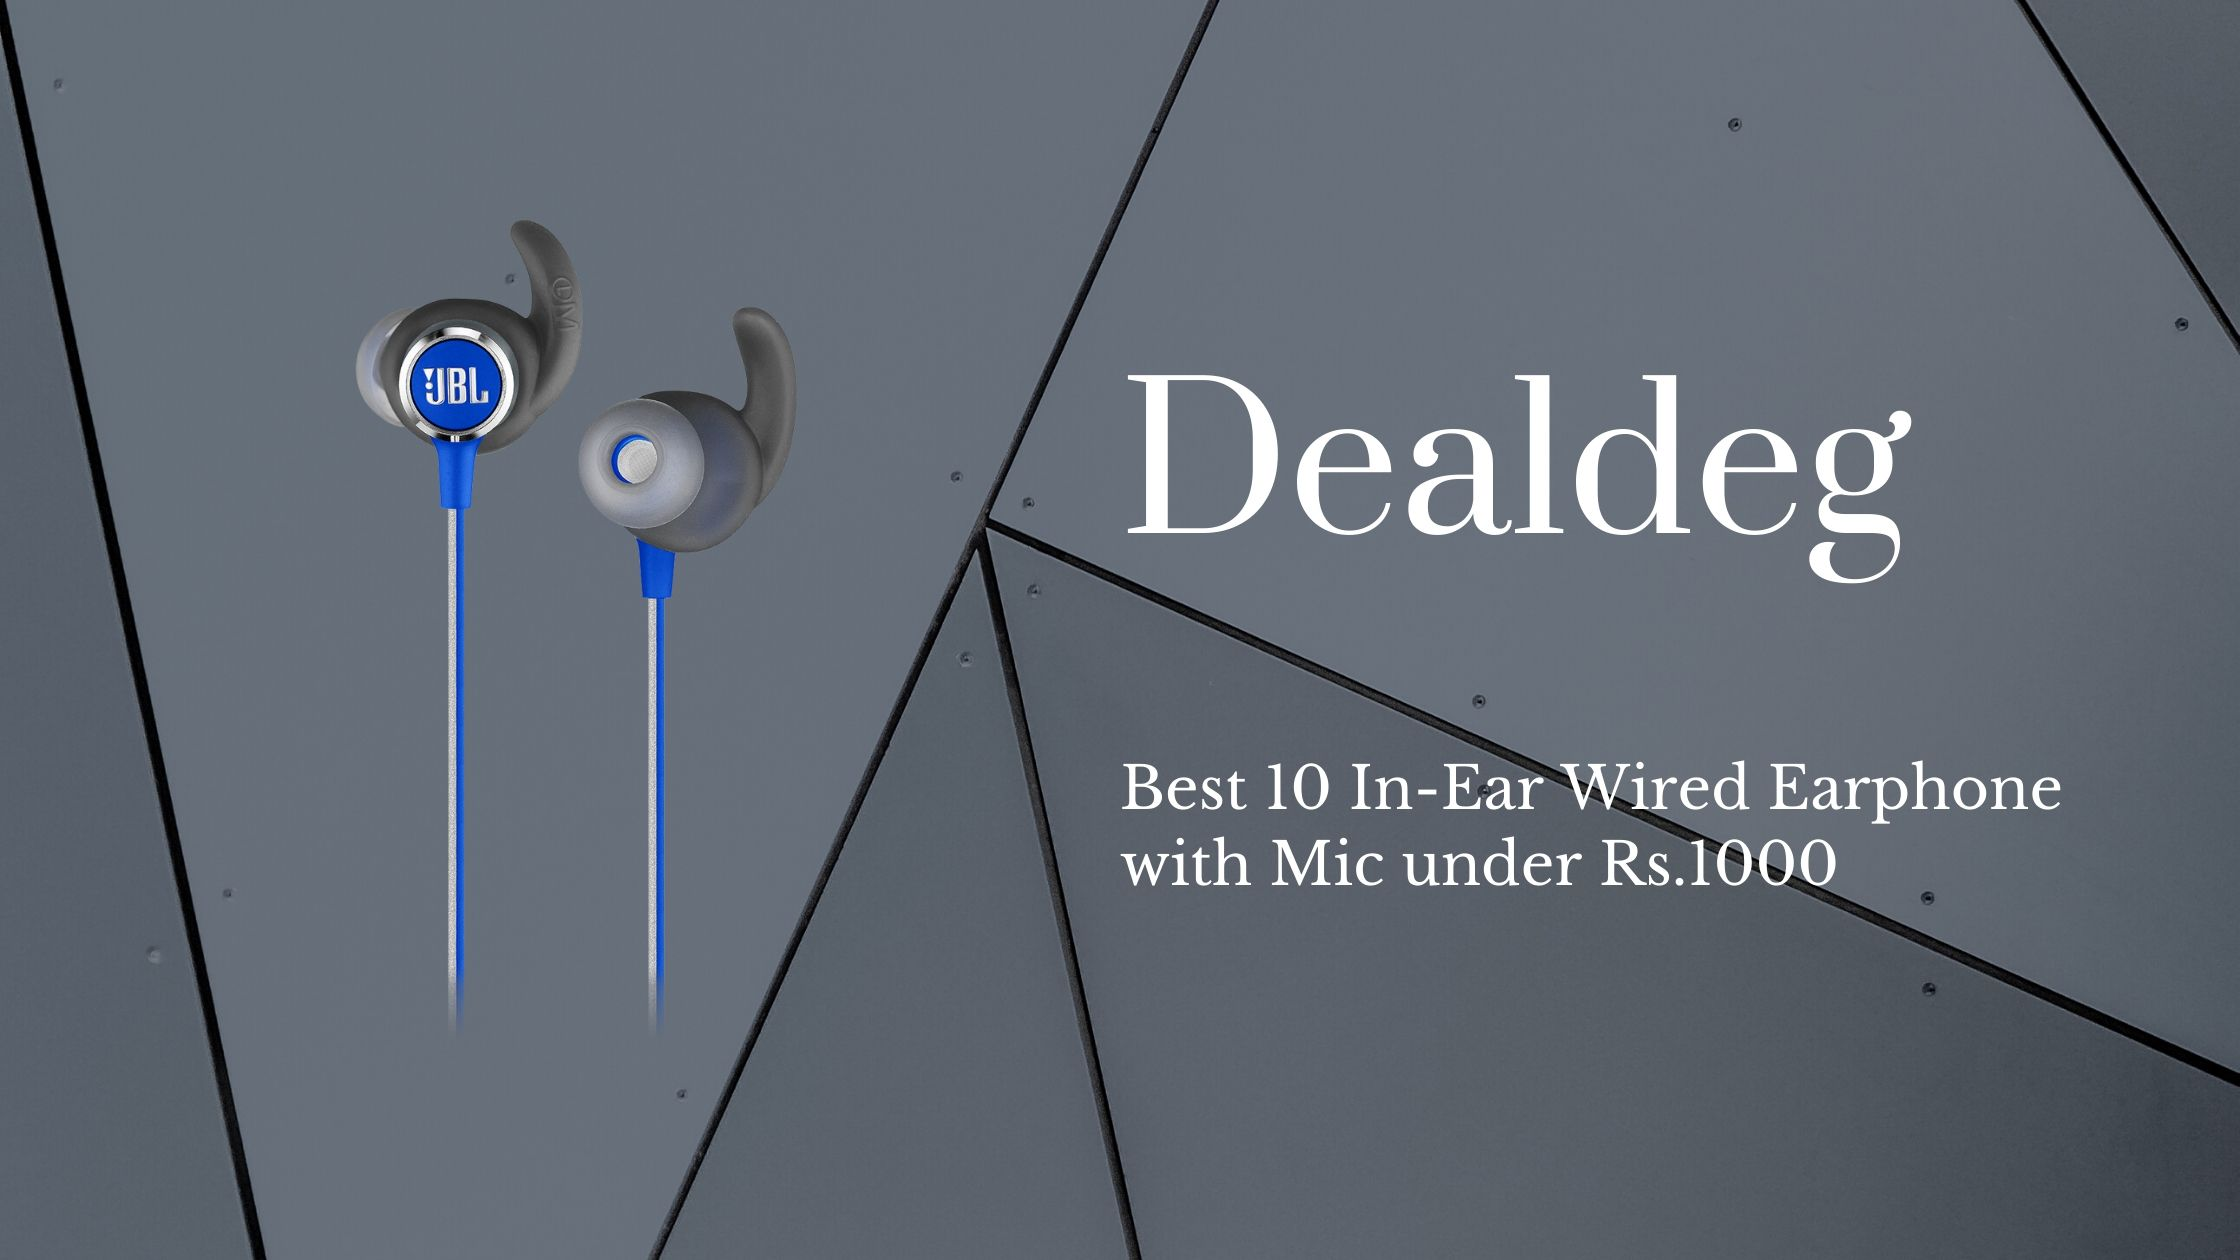 Best 10 In-Ear Wired Earphone with Mic under Rs.1000